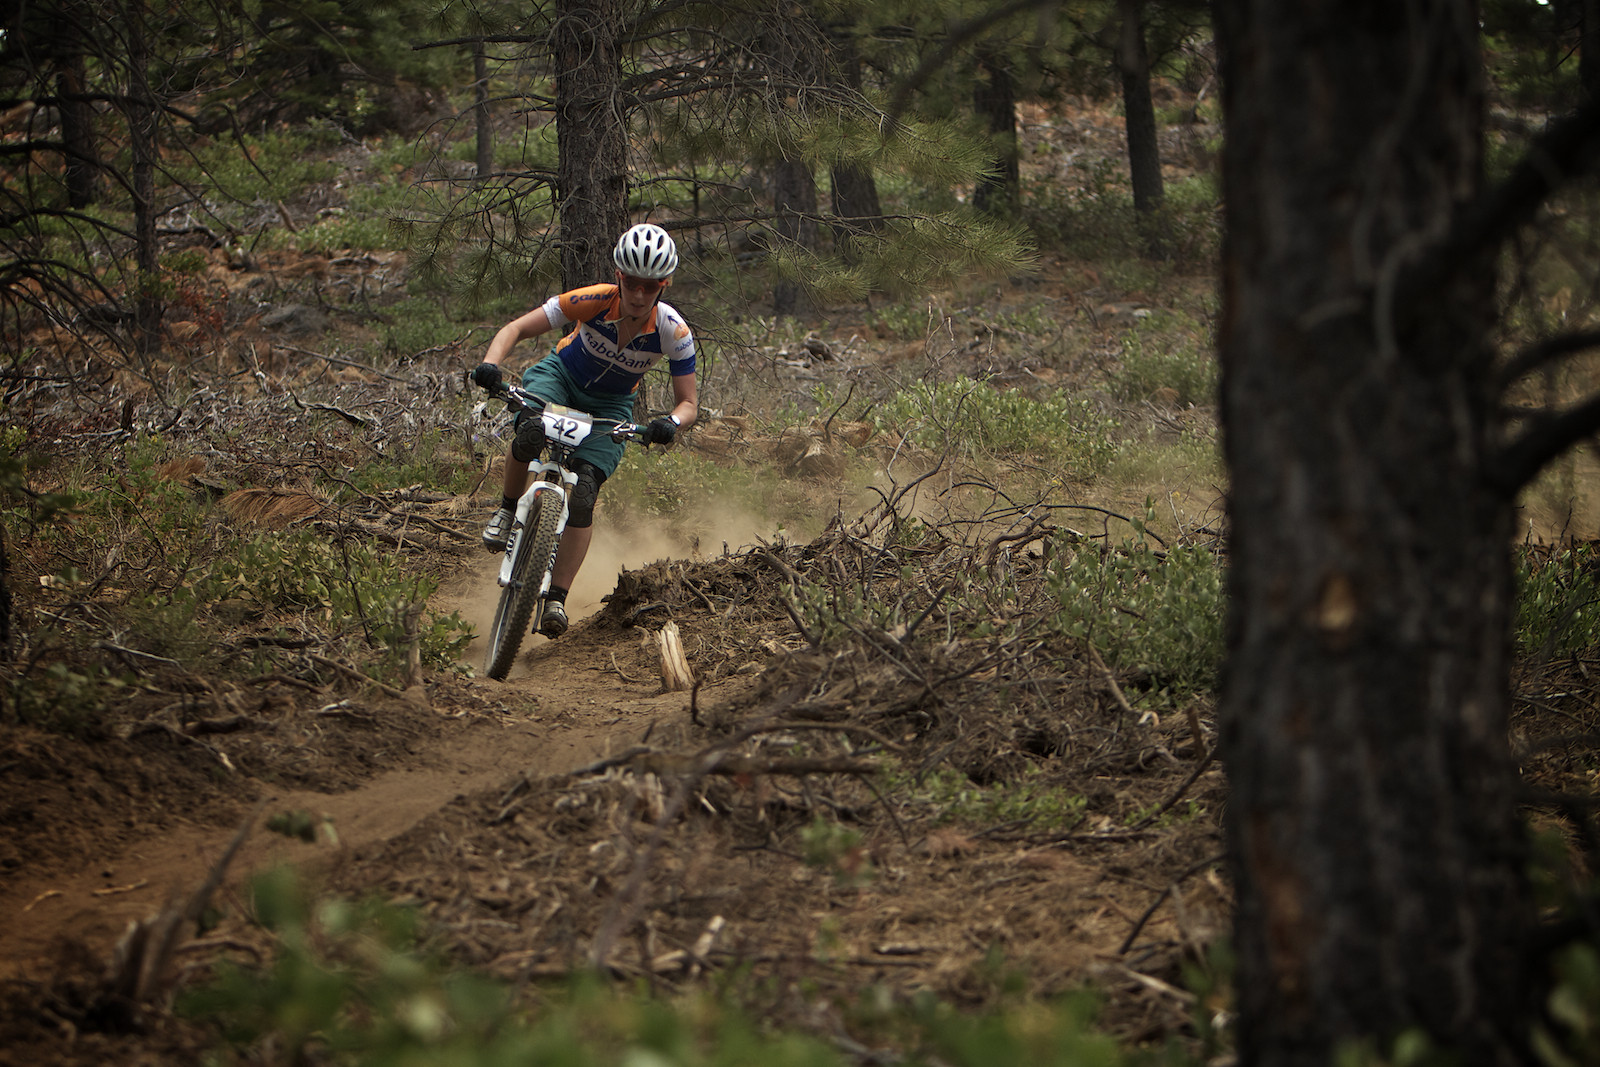 2012 Sisters Enduro Rosara Joseph, Winner of the Pro Women's Class - corytepper.com - Mountain Biking Pictures - Vital MTB